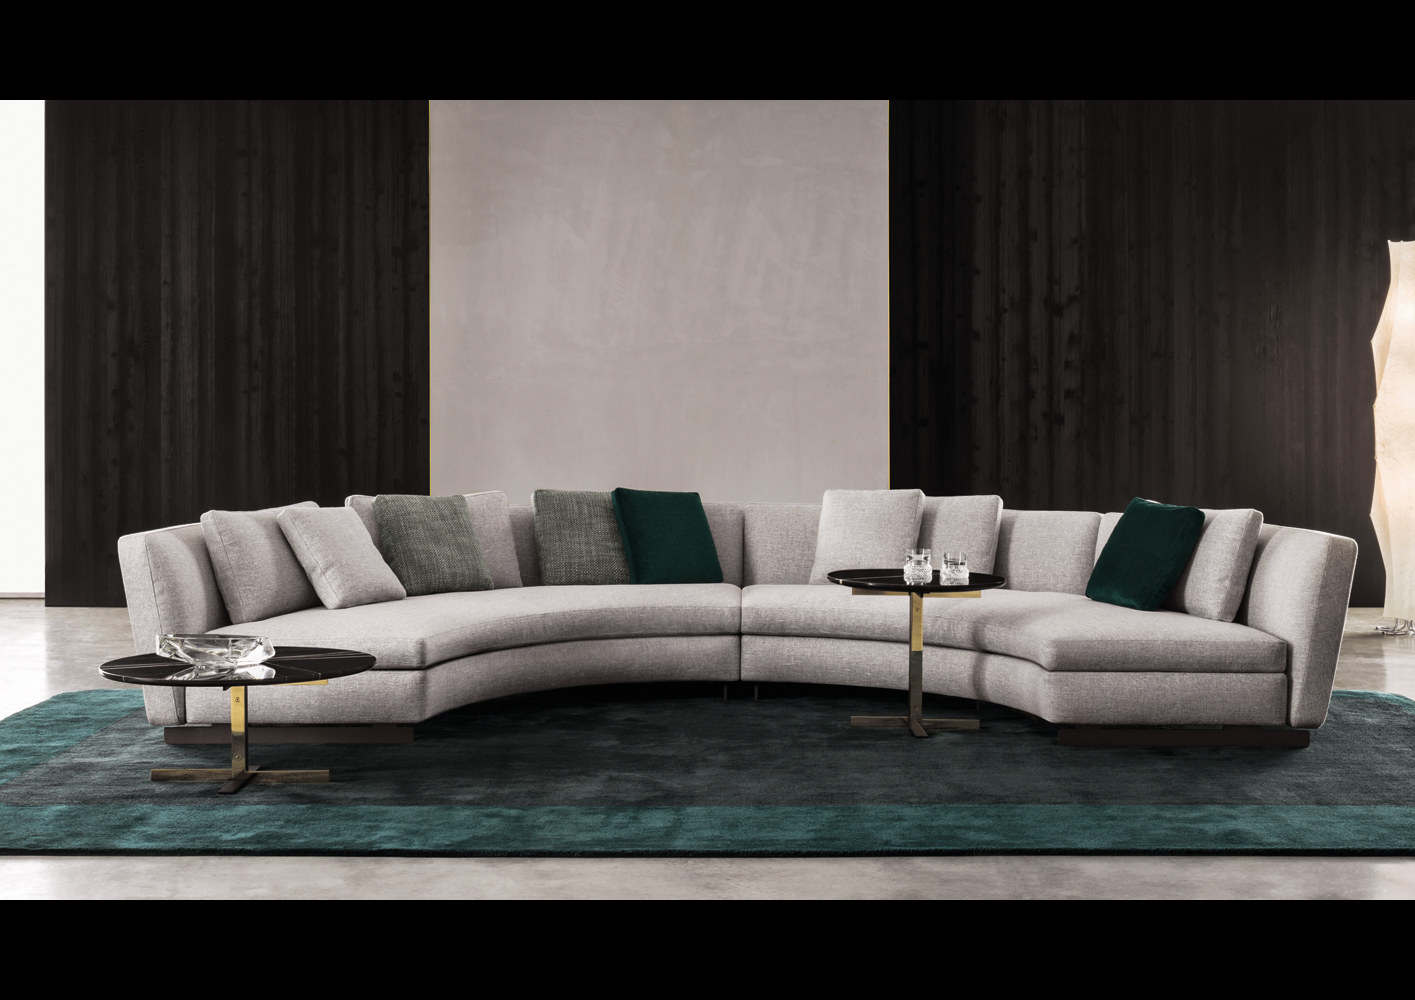 leather sofa with fabric seat cushions refilling seymour | designed by rodolfo dordoni, minotti ...